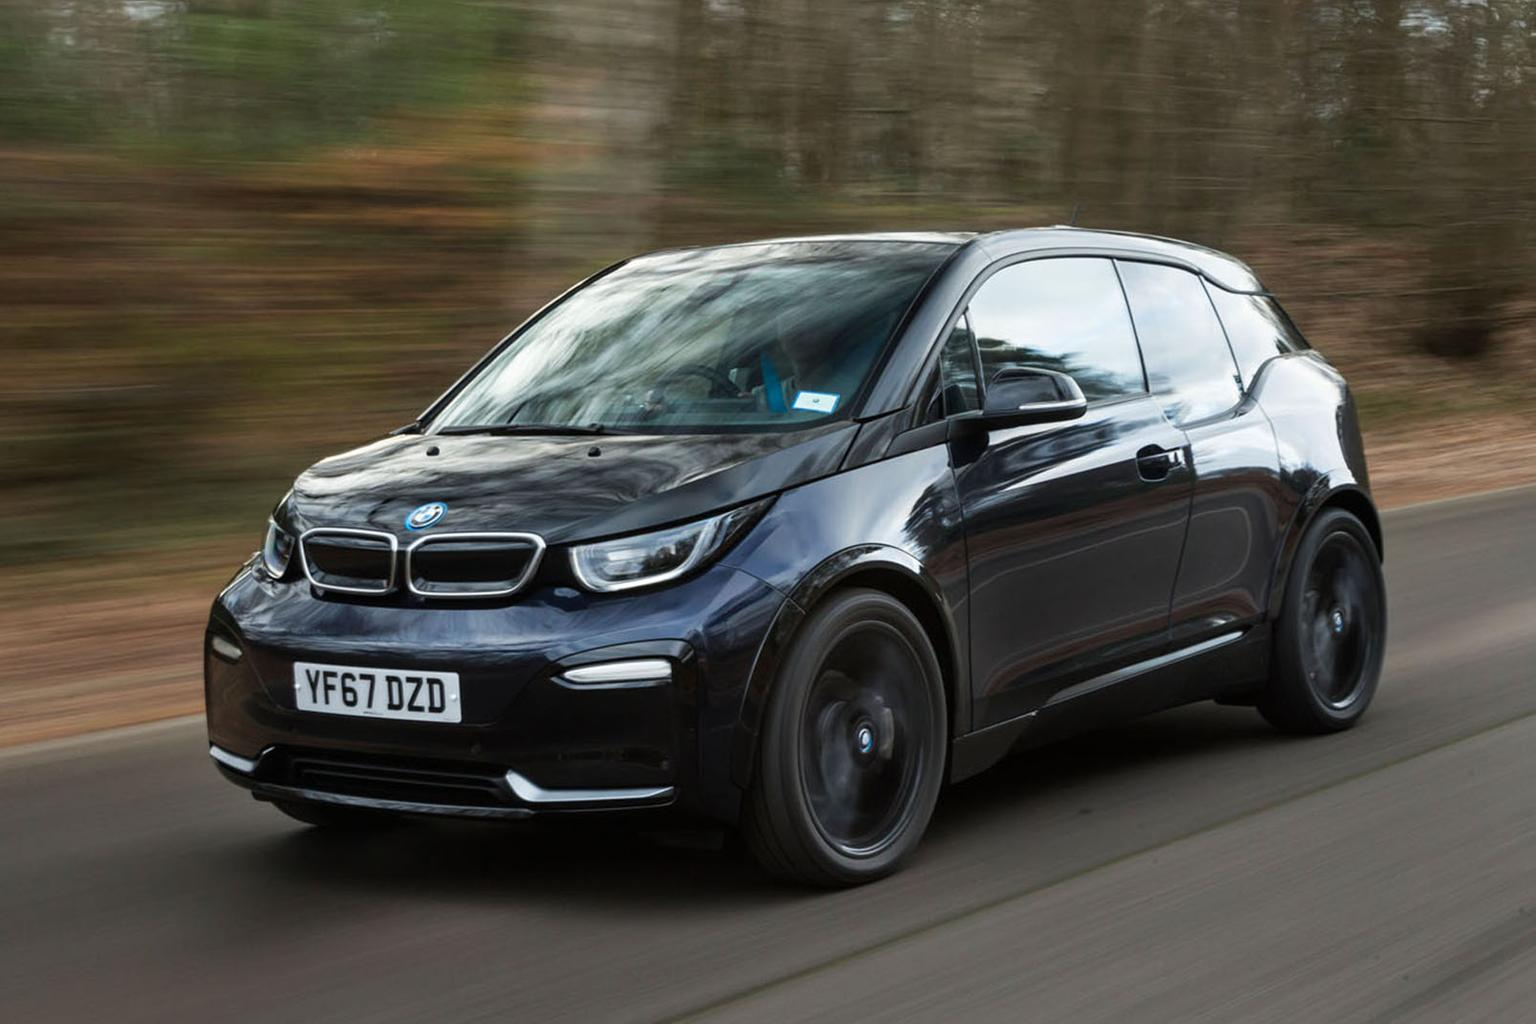 Best cars for less than £500 per month